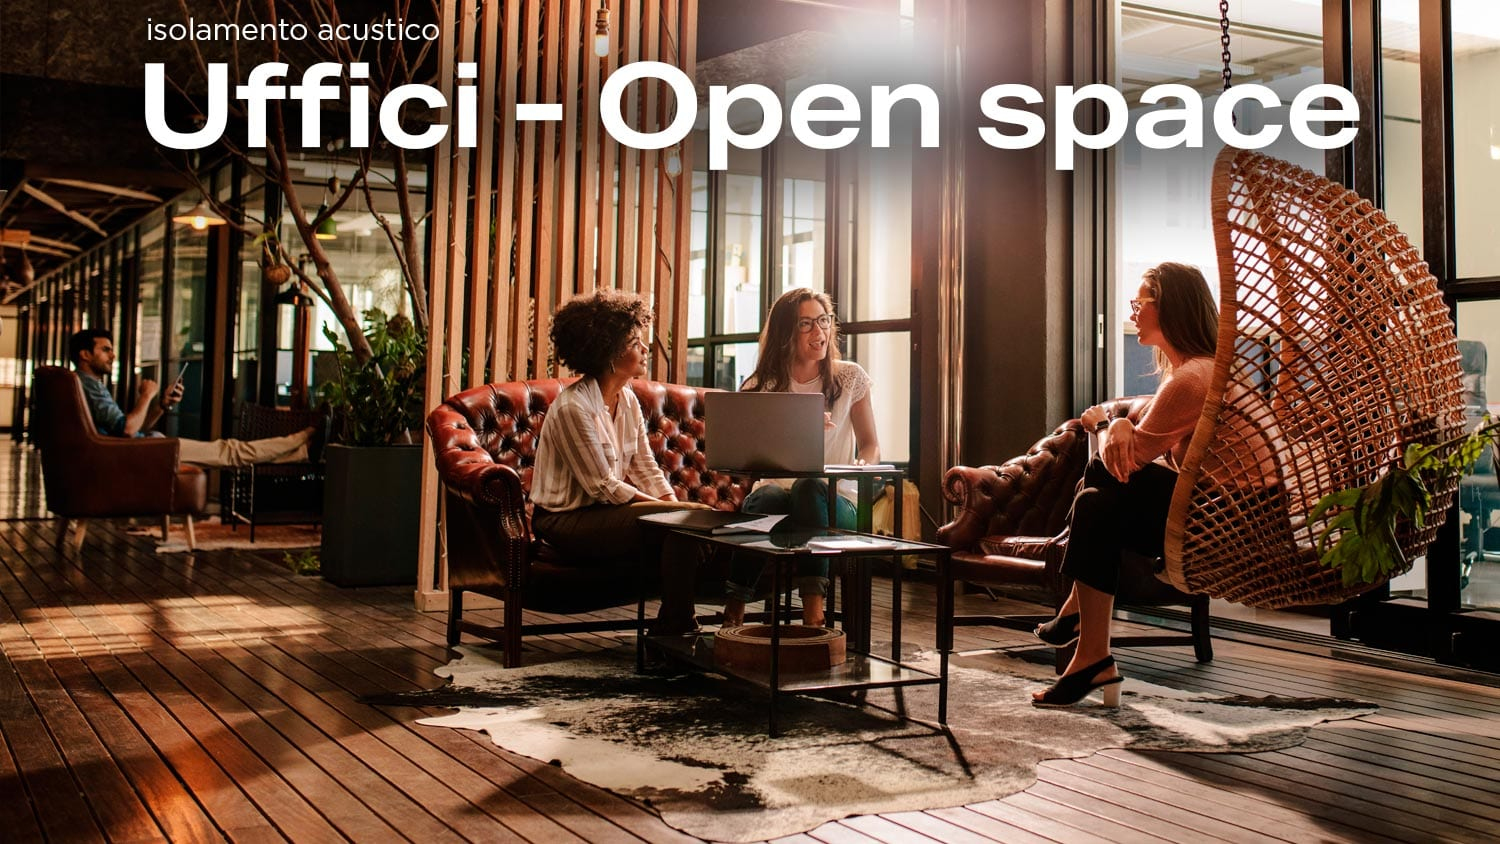 Isolamento acustico Uffici - Open space